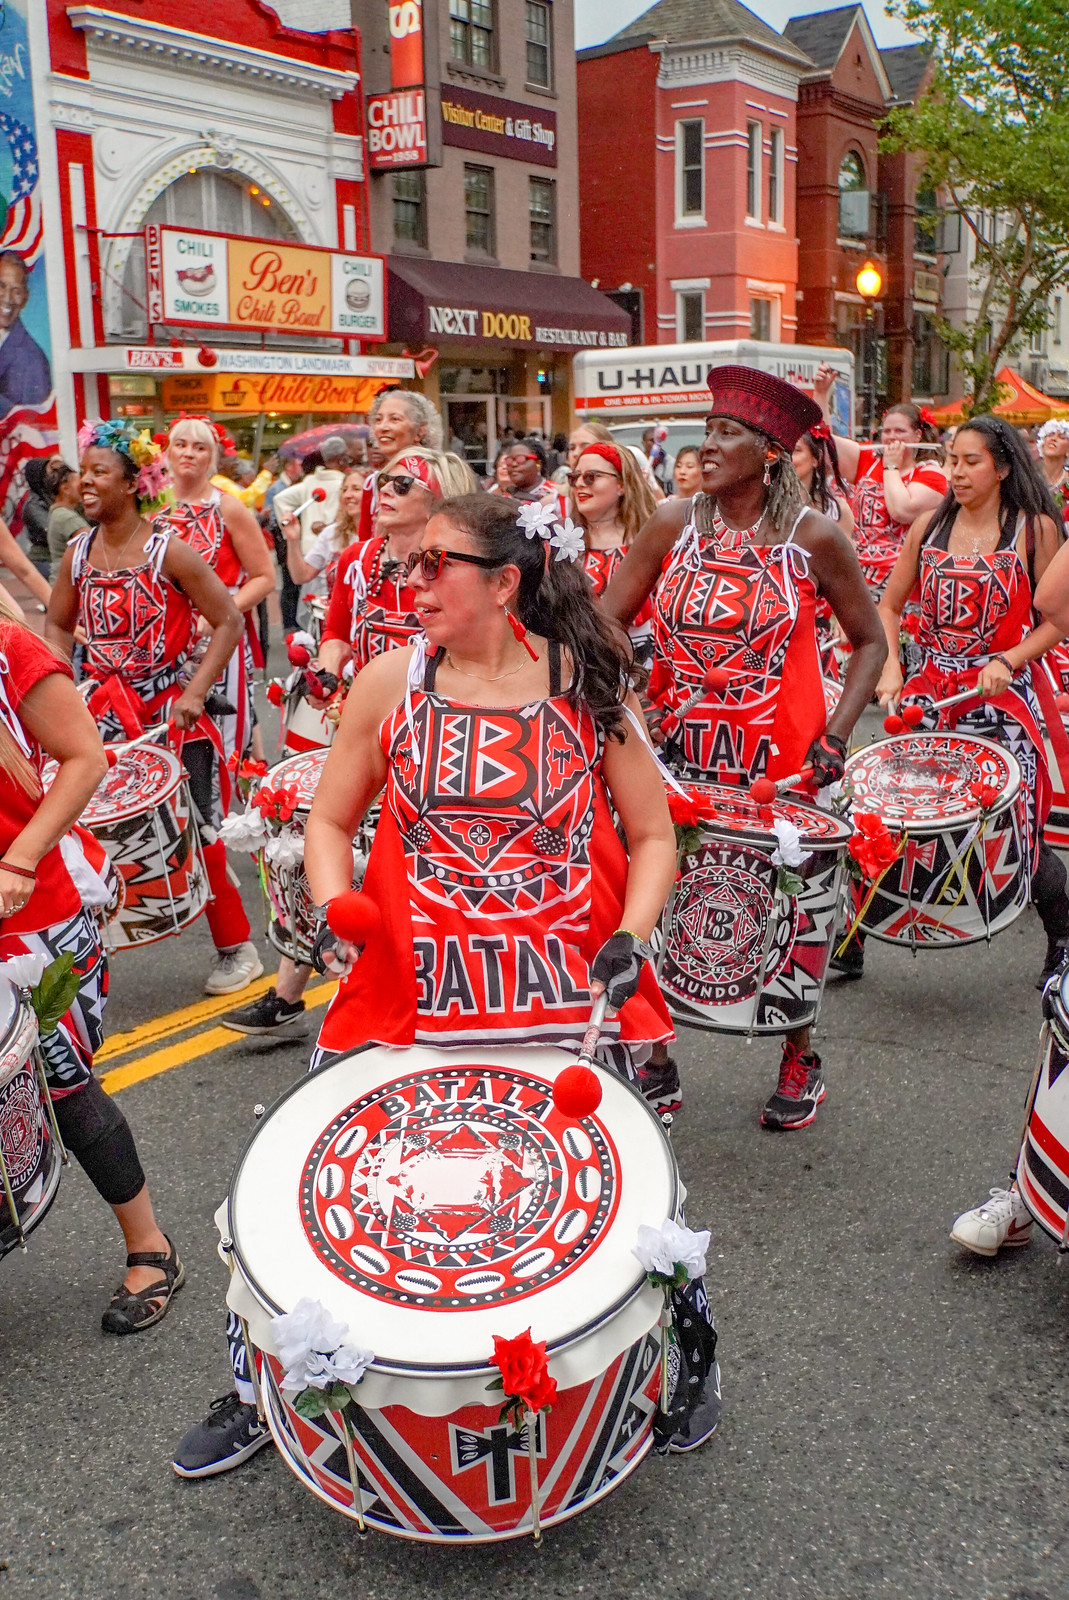 2019.05.11 DC Funk Parade featuring Batala, Washington, DC USA 02290